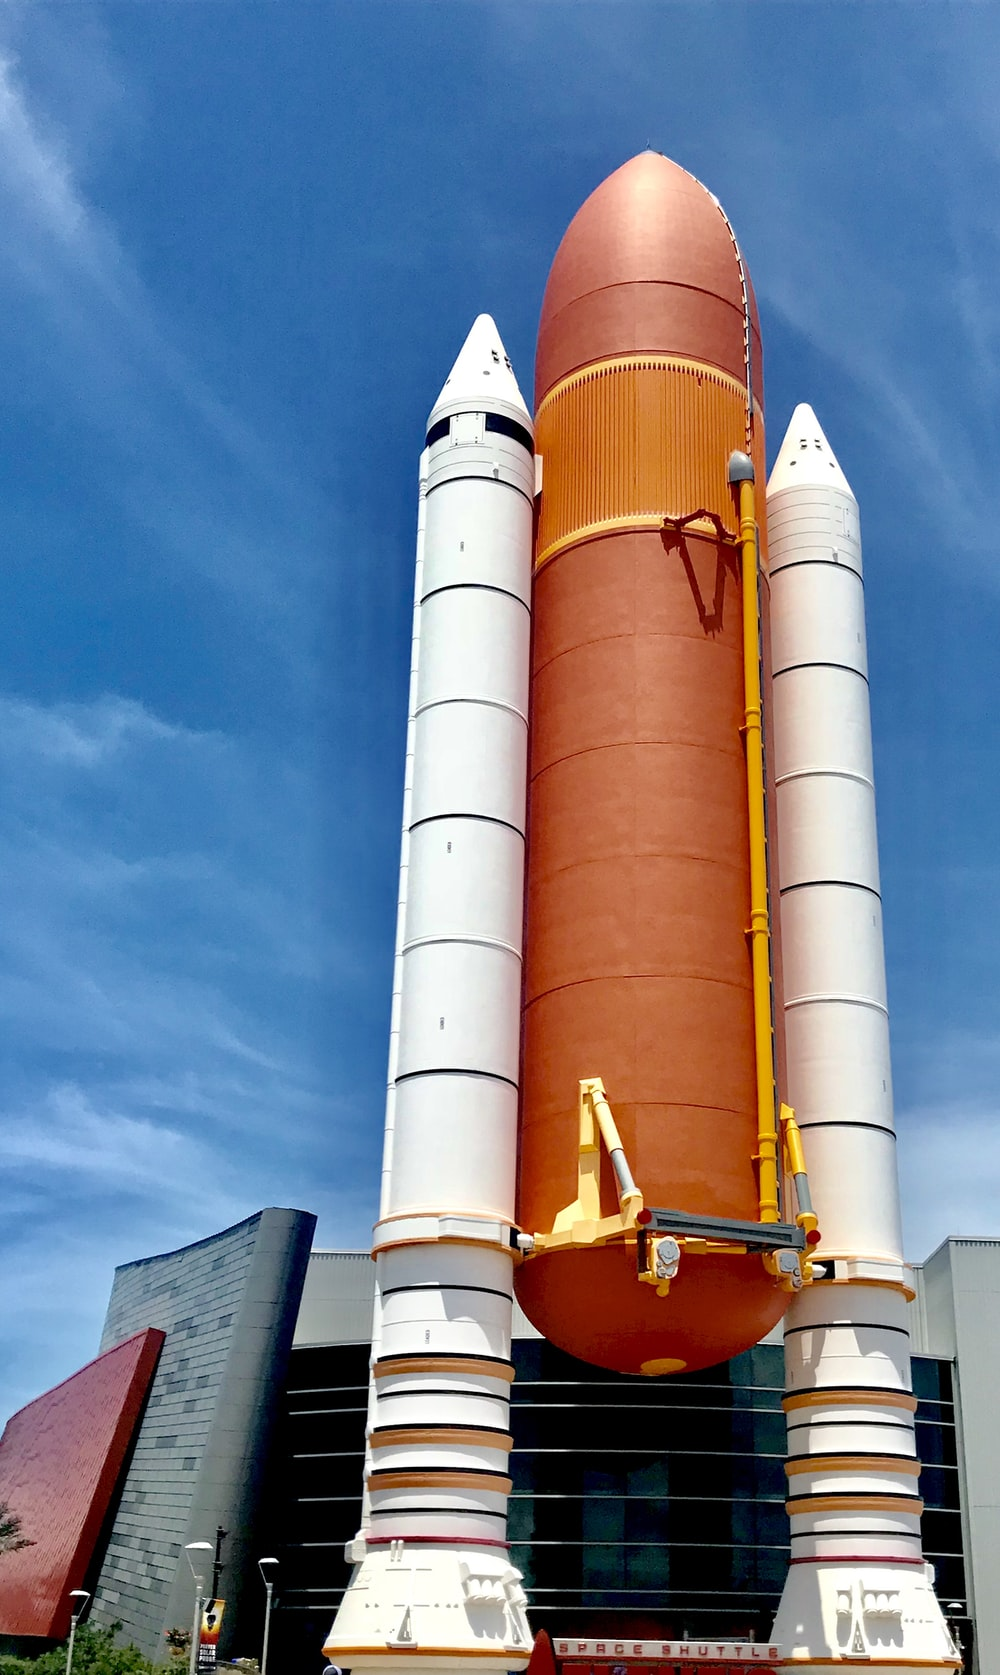 orange and white space shuttle